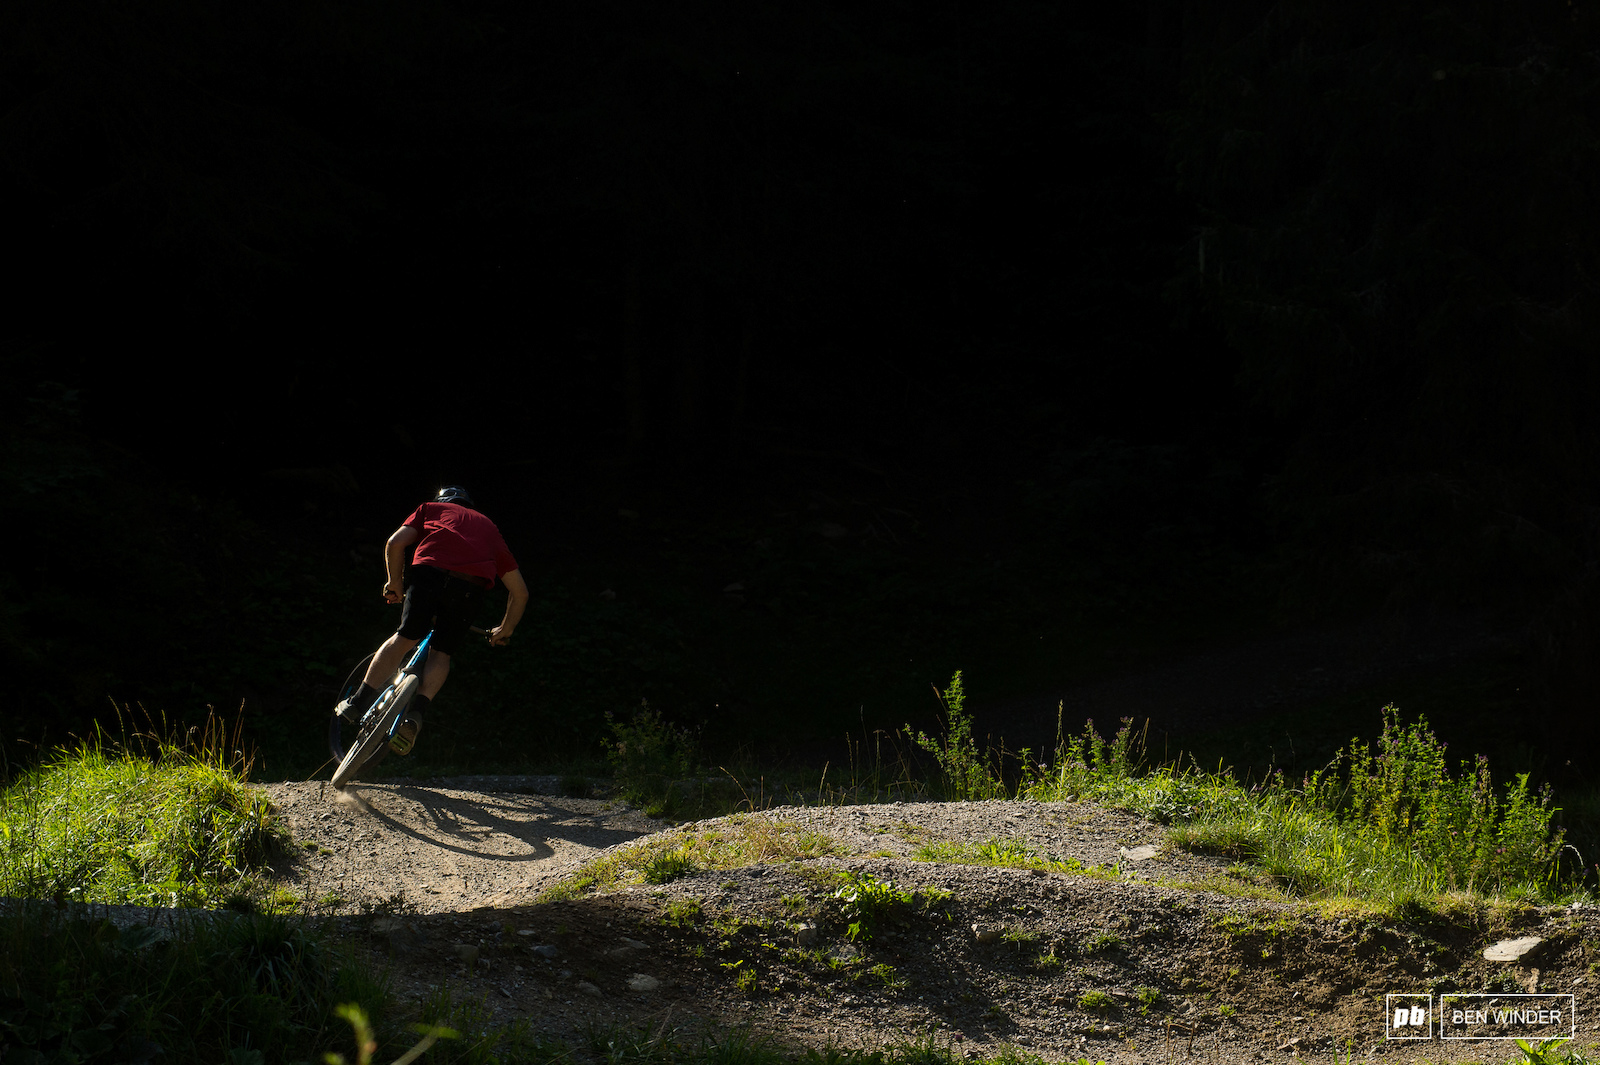 The pumptrack is perfect for evening laps once the bikepark has closed